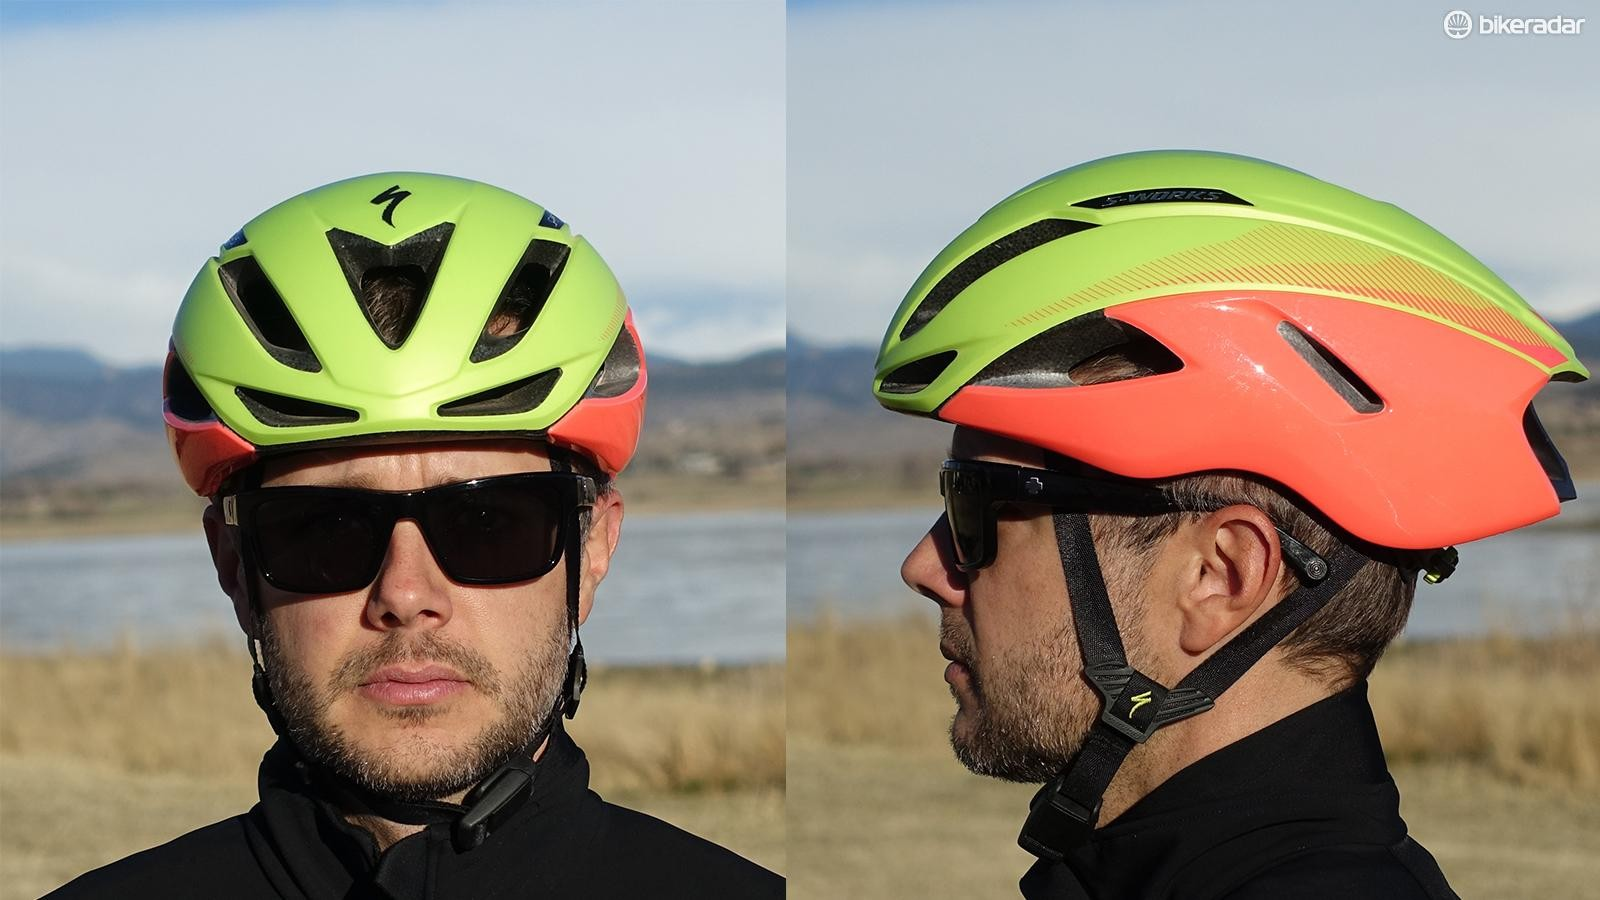 The Evade II is 1cm shorter than the original, but still has an elongated shape compared to a standard road helmet